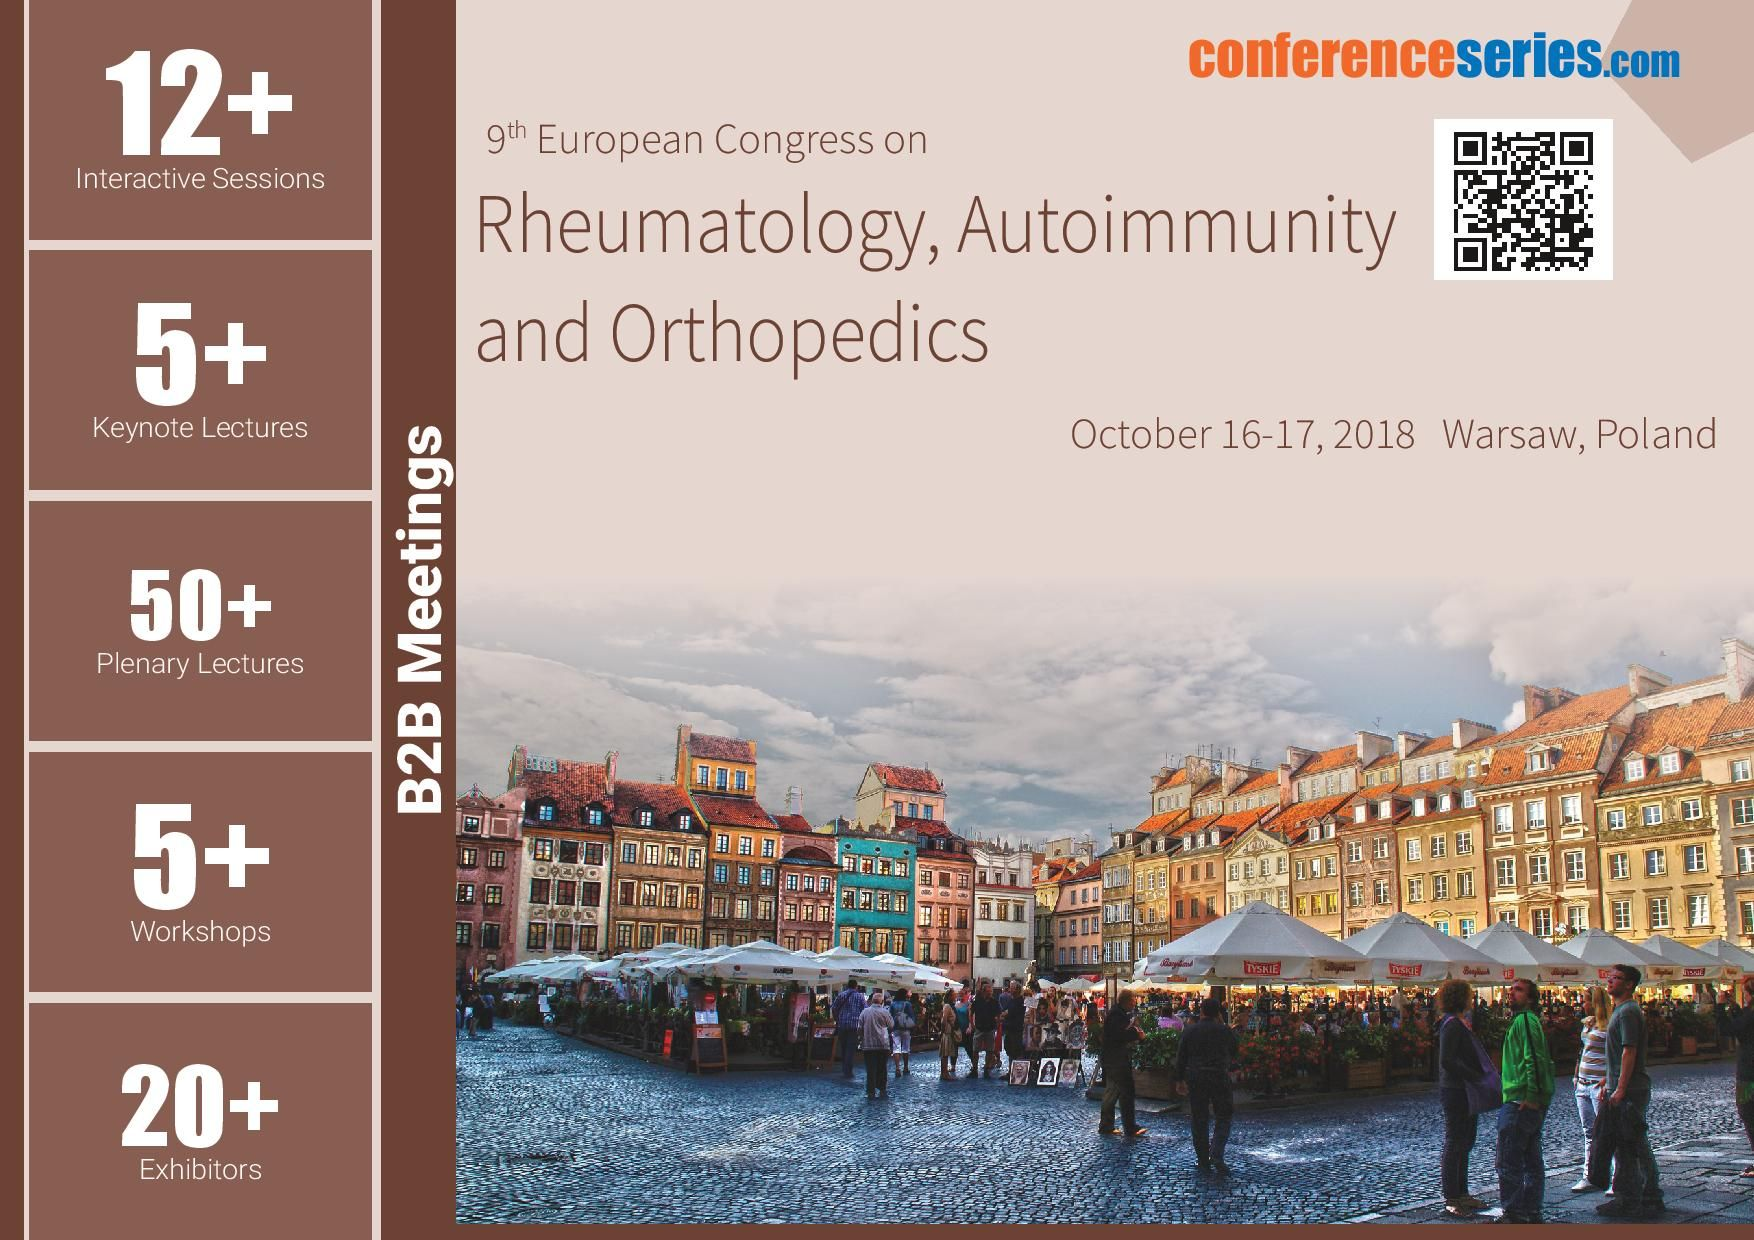 9th European Congress On Rheumatology Autoimmunity And